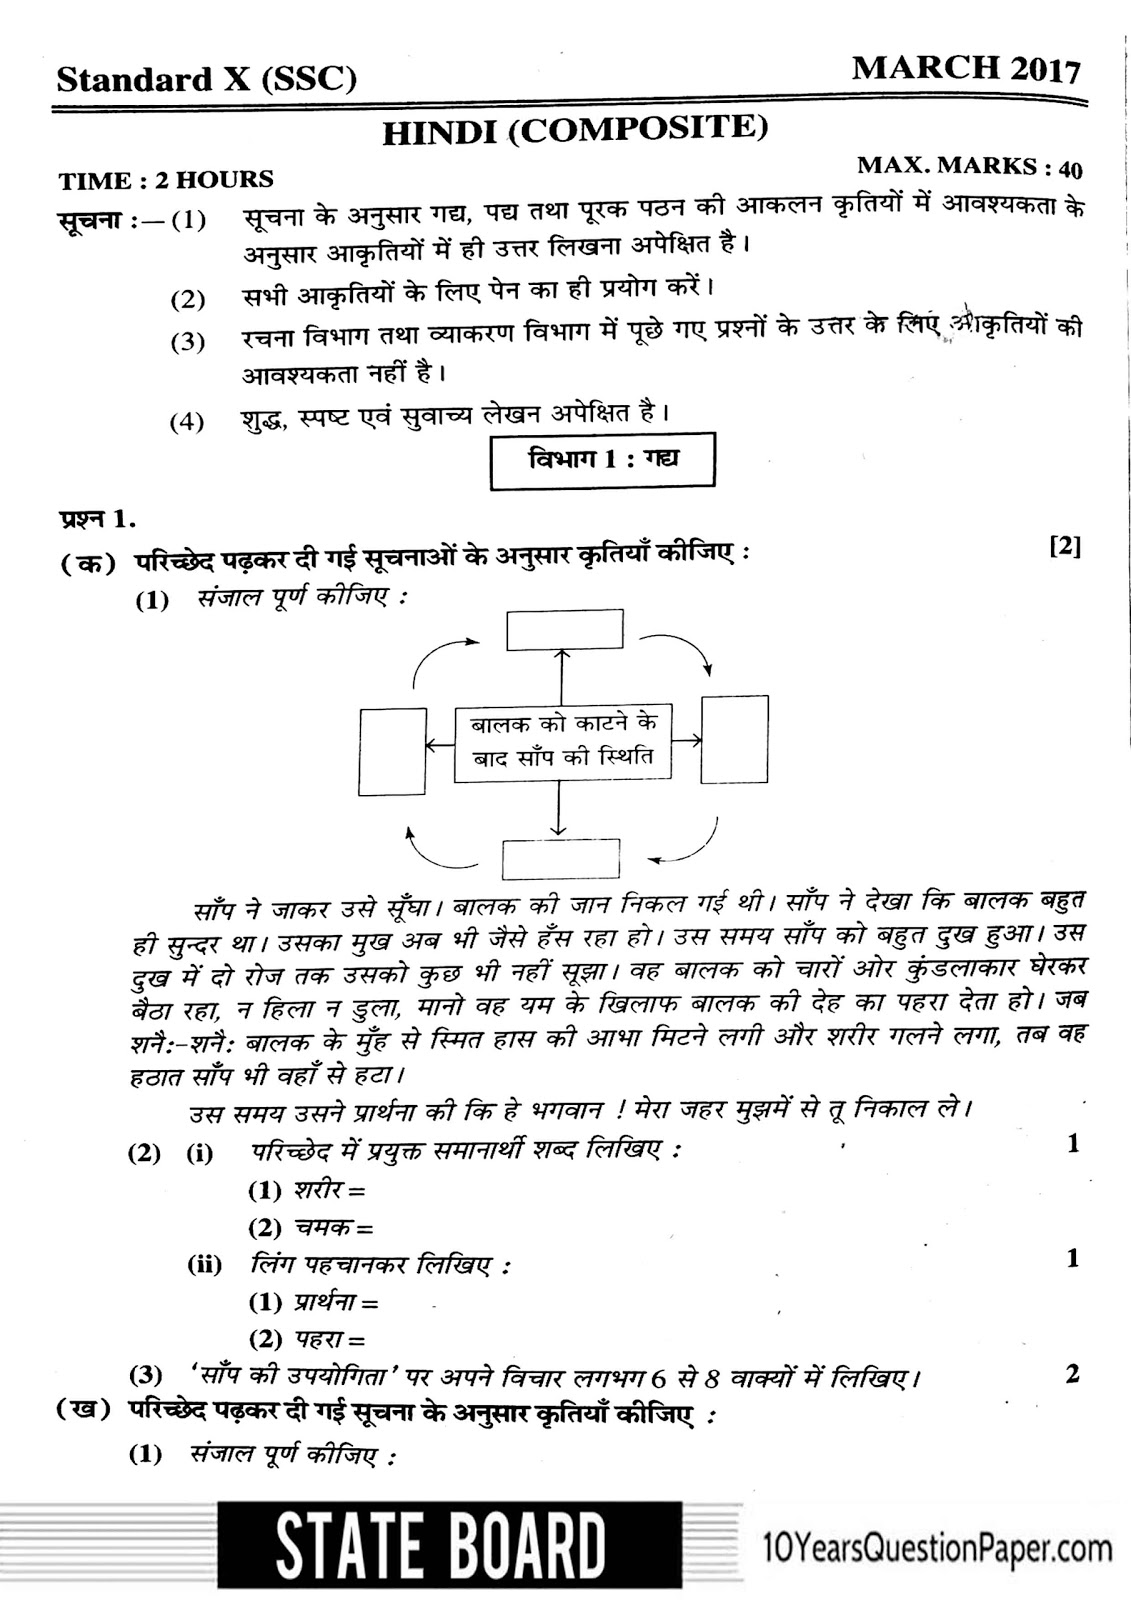 SSC board class 10th 2017 Hindi Composite Solved question paper